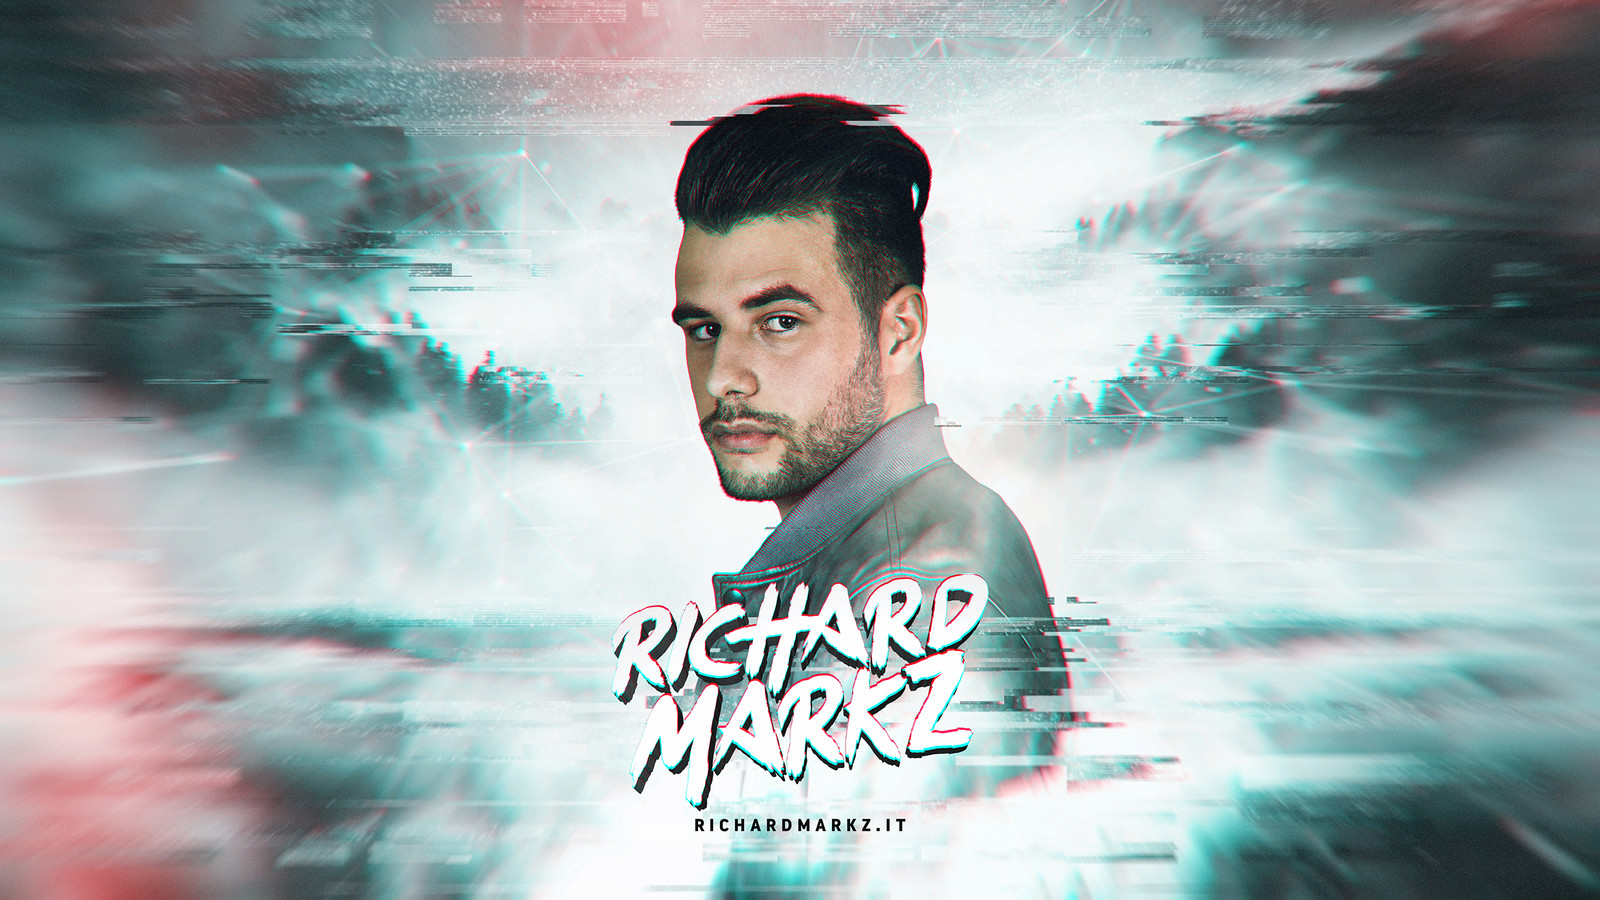 Richard Markz